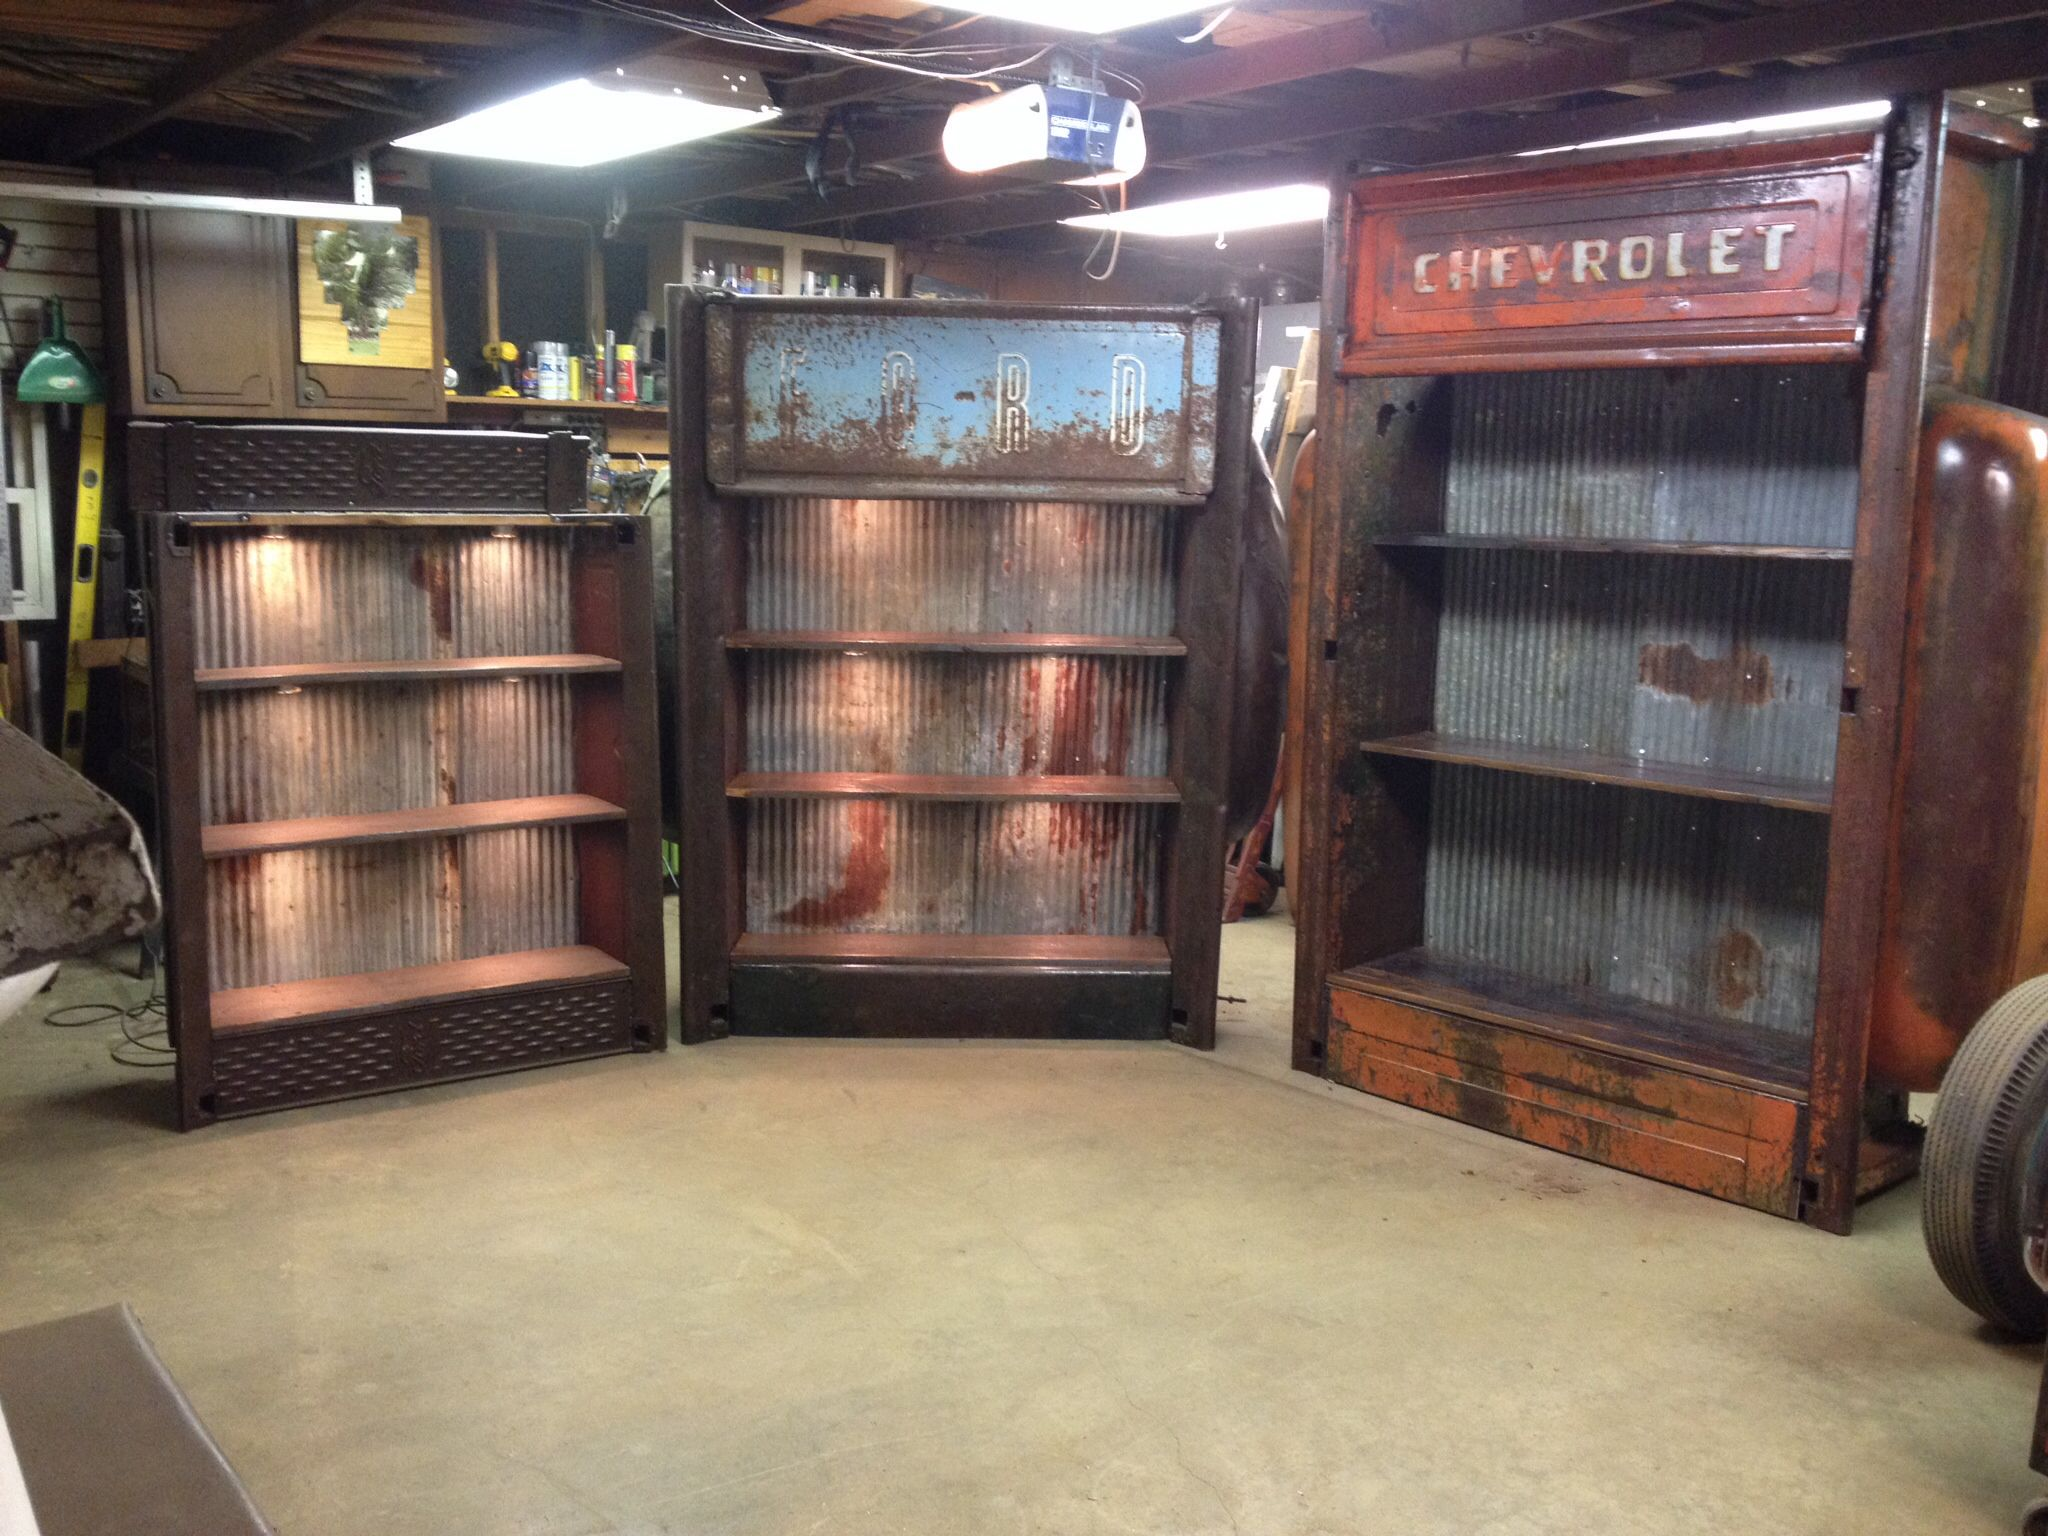 Full truck bed shelving units. All have under shelf